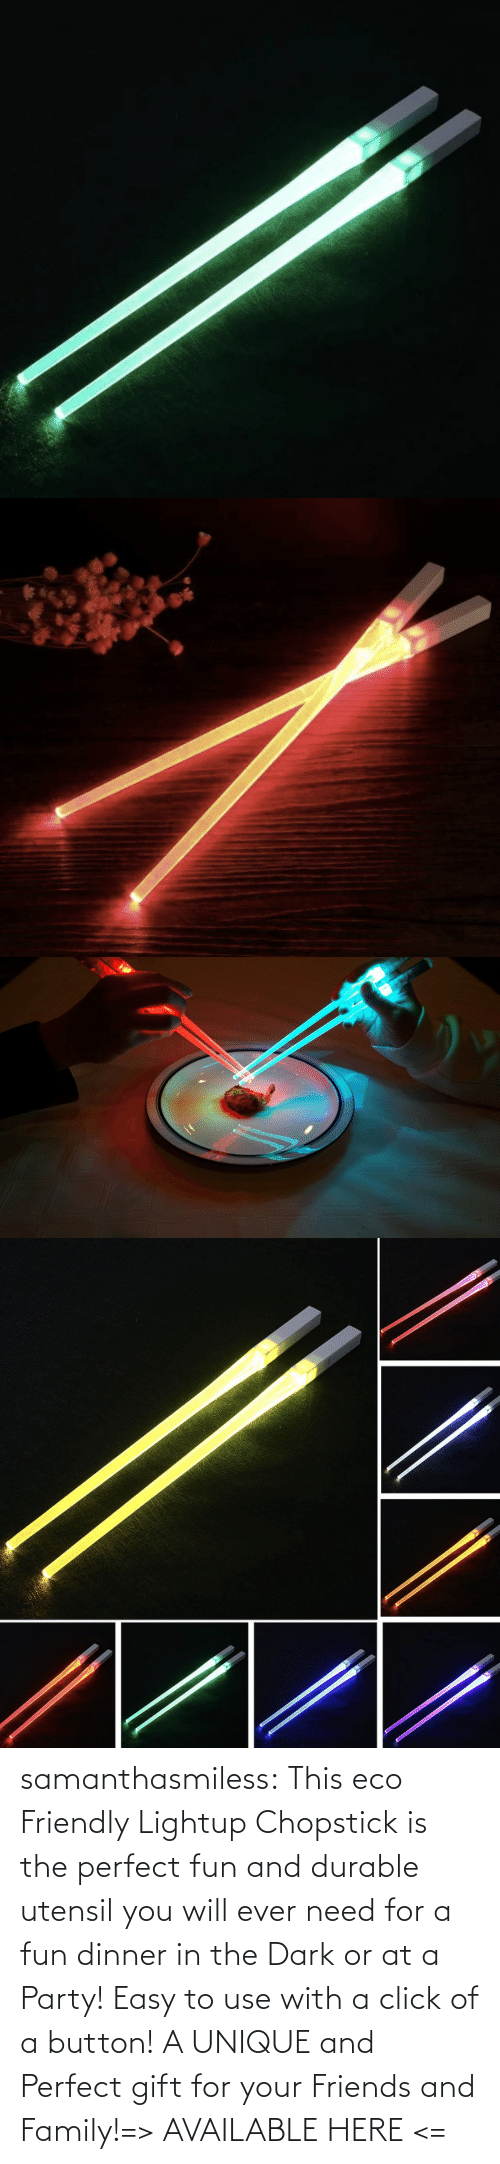 ever: samanthasmiless:  This eco Friendly Lightup Chopstick is the perfect fun and durable utensil you will ever need for a fun dinner in the Dark or at a Party! Easy to use with a click of a button! A UNIQUE and Perfect gift for your Friends and Family!=> AVAILABLE HERE <=